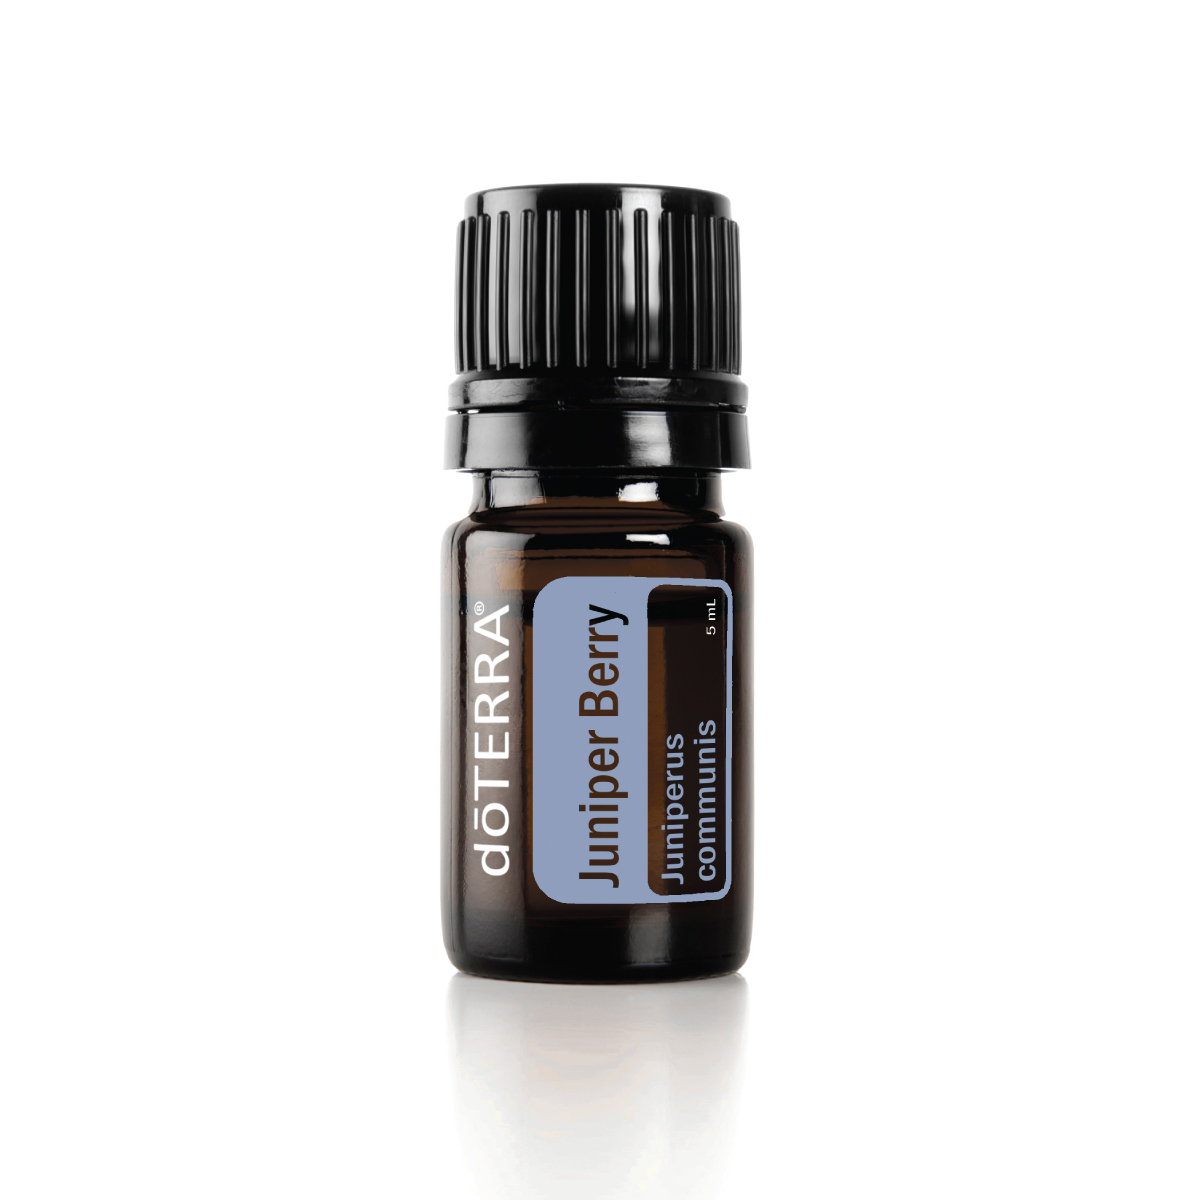 Bottle of doTERRA Juniper Berry oil. What is Juniper Berry essential oil used for? Juniper Berry oil can be used for skin benefits, internal benefits, and to create a grounding atmosphere.